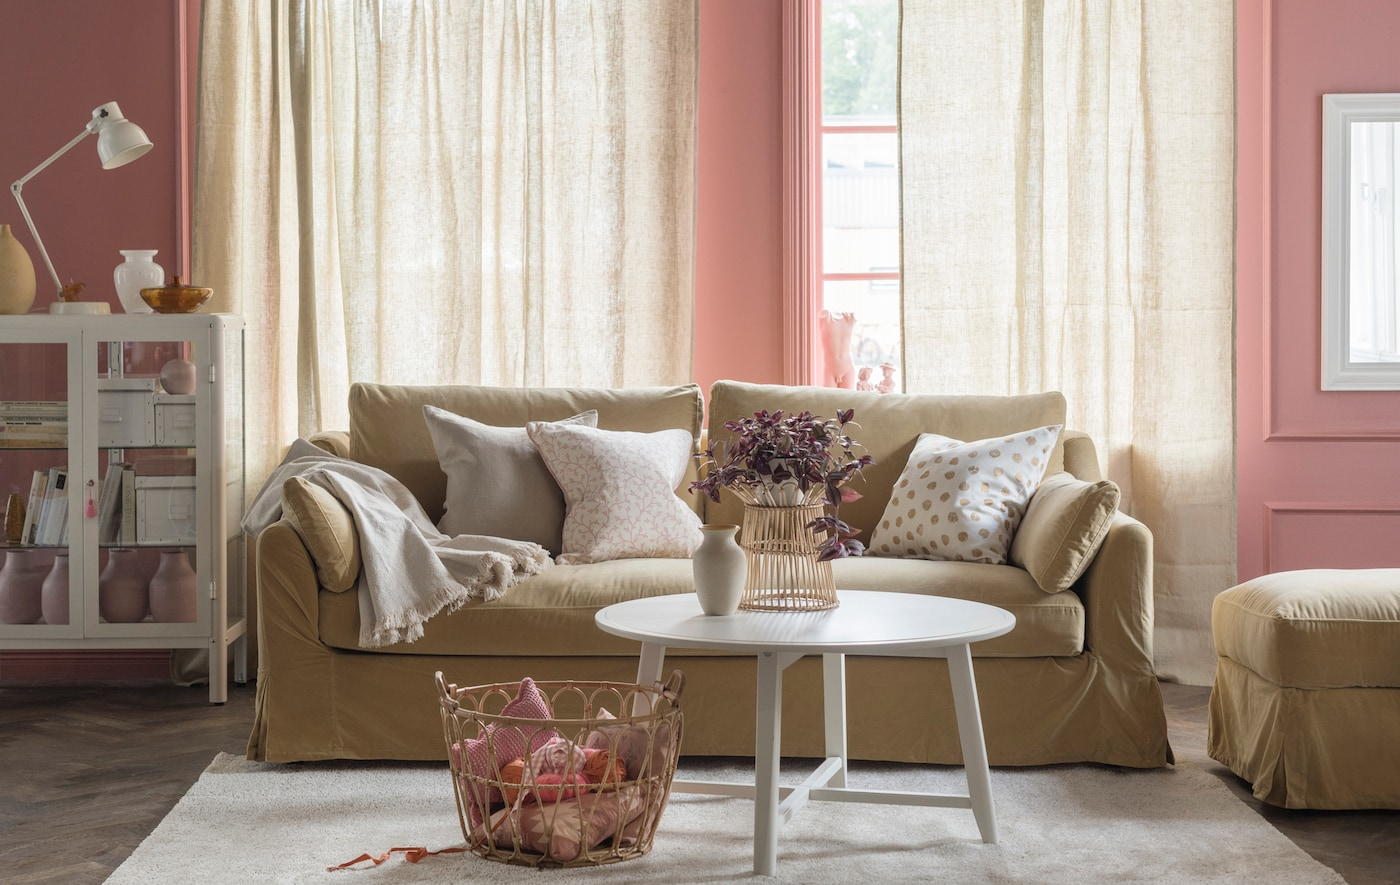 Need a new look for Spring? Our interior designer is here with a few helpful tips.